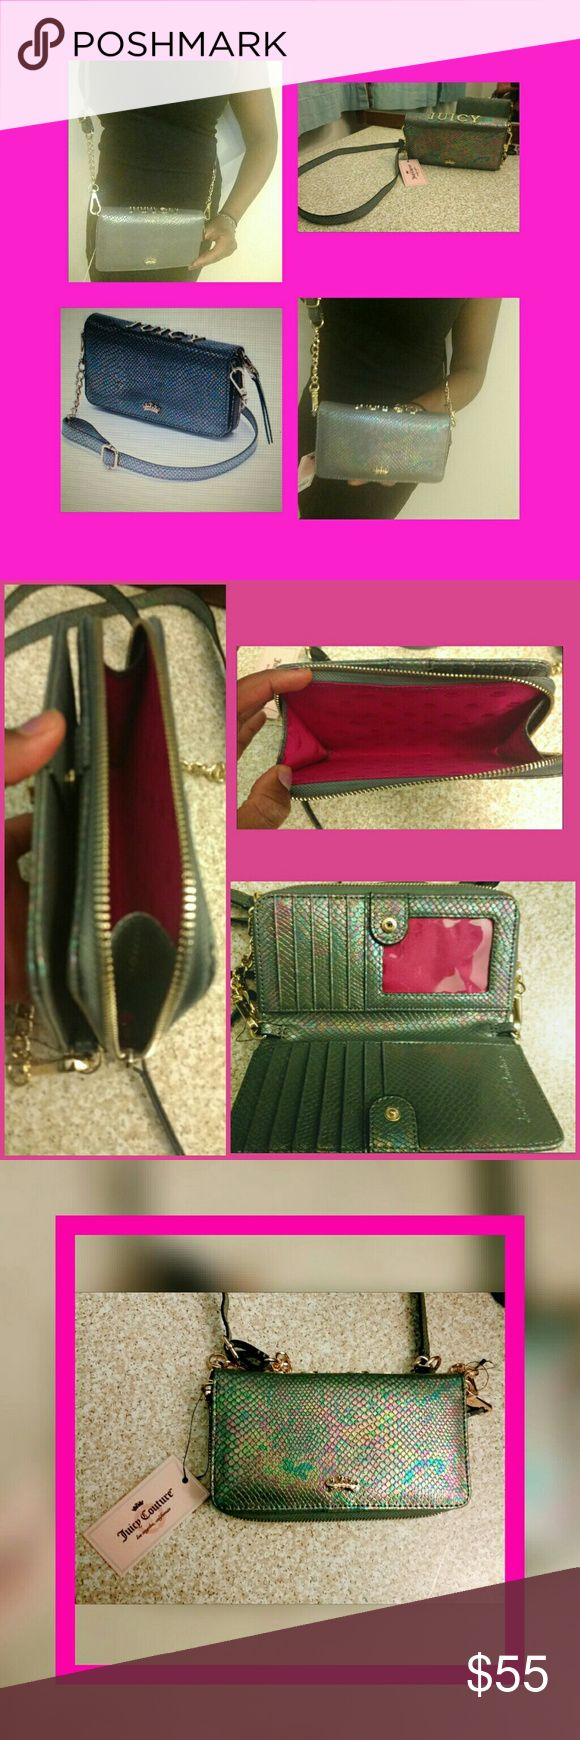 """JUICY COUTURE crossbody       *NWT  *MERC Glamorous bag w/ chic silhouette & adjustable cross-body/chain strap! Opens up to reveal a spacious interior w/ multiple credit card slots & a large zippered compartment designed to keep essentials like your phone, lipstick and makeup compact organized.   Gorgeous hardware bearing the Juicy couture name. Color: Pearl (stunning Hologram color) Measures: 4"""" tall & 7"""" wide Brand New/Never Worn New with Tags!  *ITEM IS LISTED ON MERC for $55 w/ FREE…"""